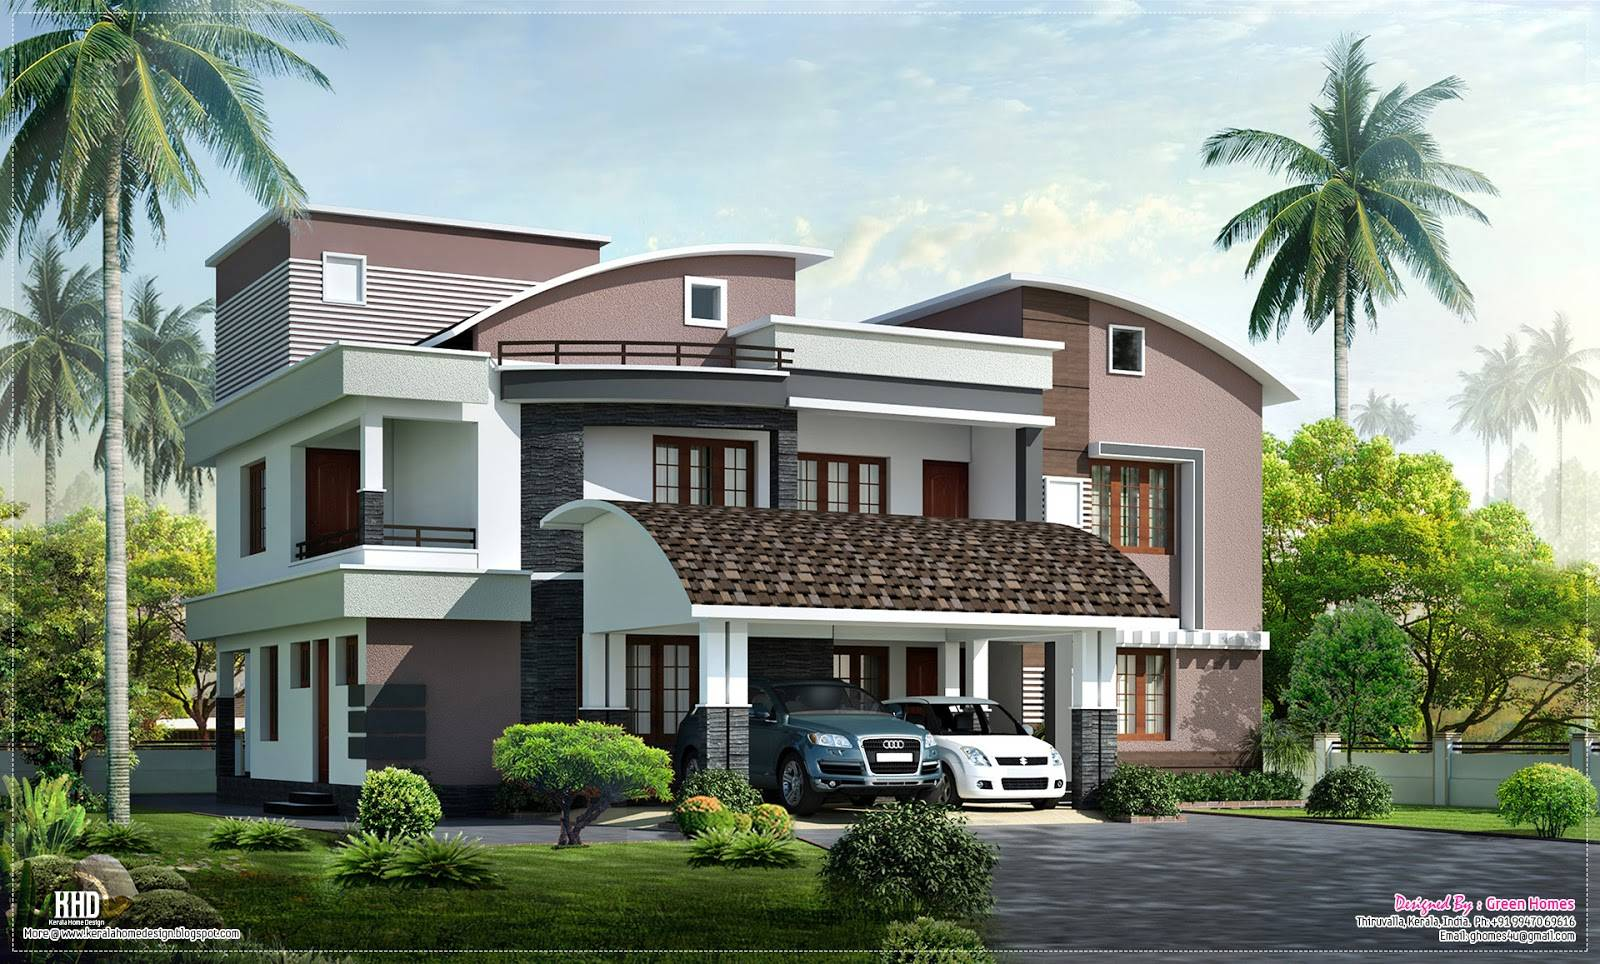 modern style luxury villa exterior design house plans home building